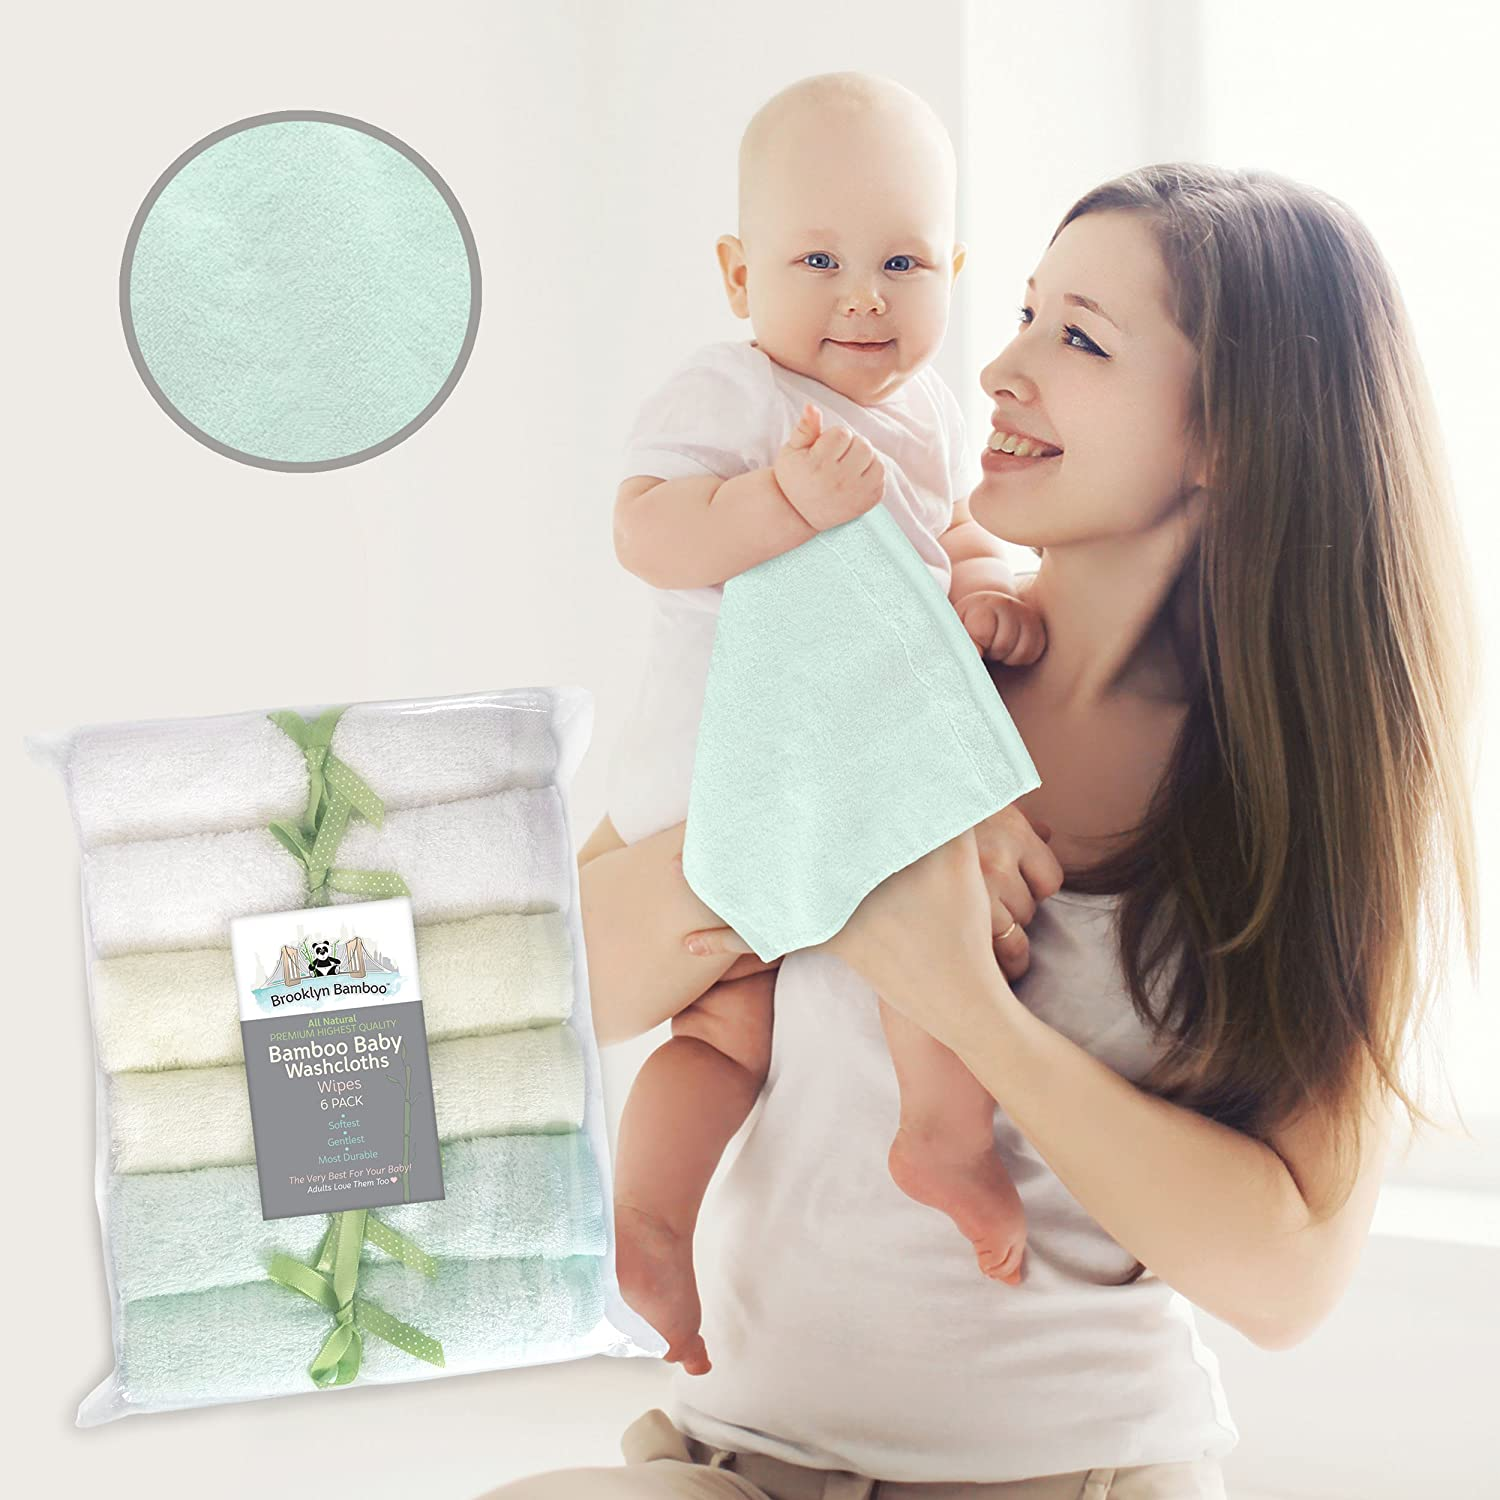 Brooklyn Bamboo Baby Washcloth / Wipes 6 Pack Organic, SOFT, Larger 10x10 Size Use With Your Favorite Baby Bathing Skin Care Products And Children's Bath Towels. SOFTEST, Most Absorbent, Durable & Sustainable Washcloths On The Planet! Gentle Enough For